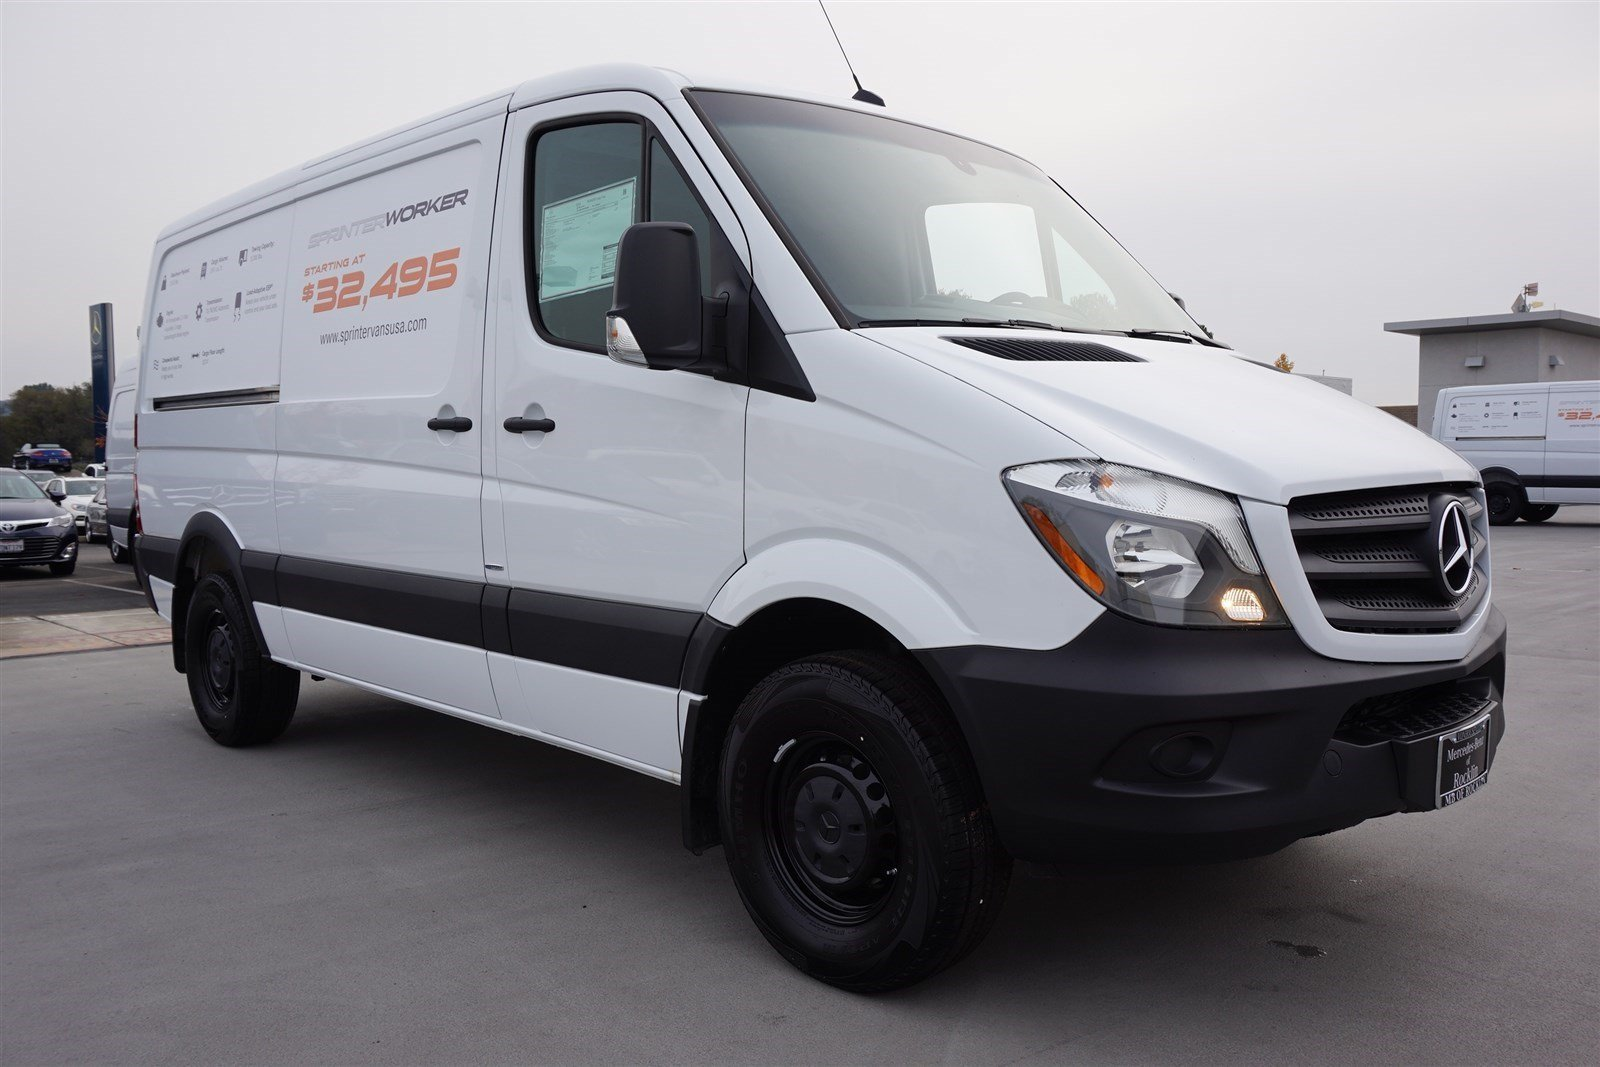 New 2016 mercedes benz sprinter cargo vans worker full for Mercedes benz van